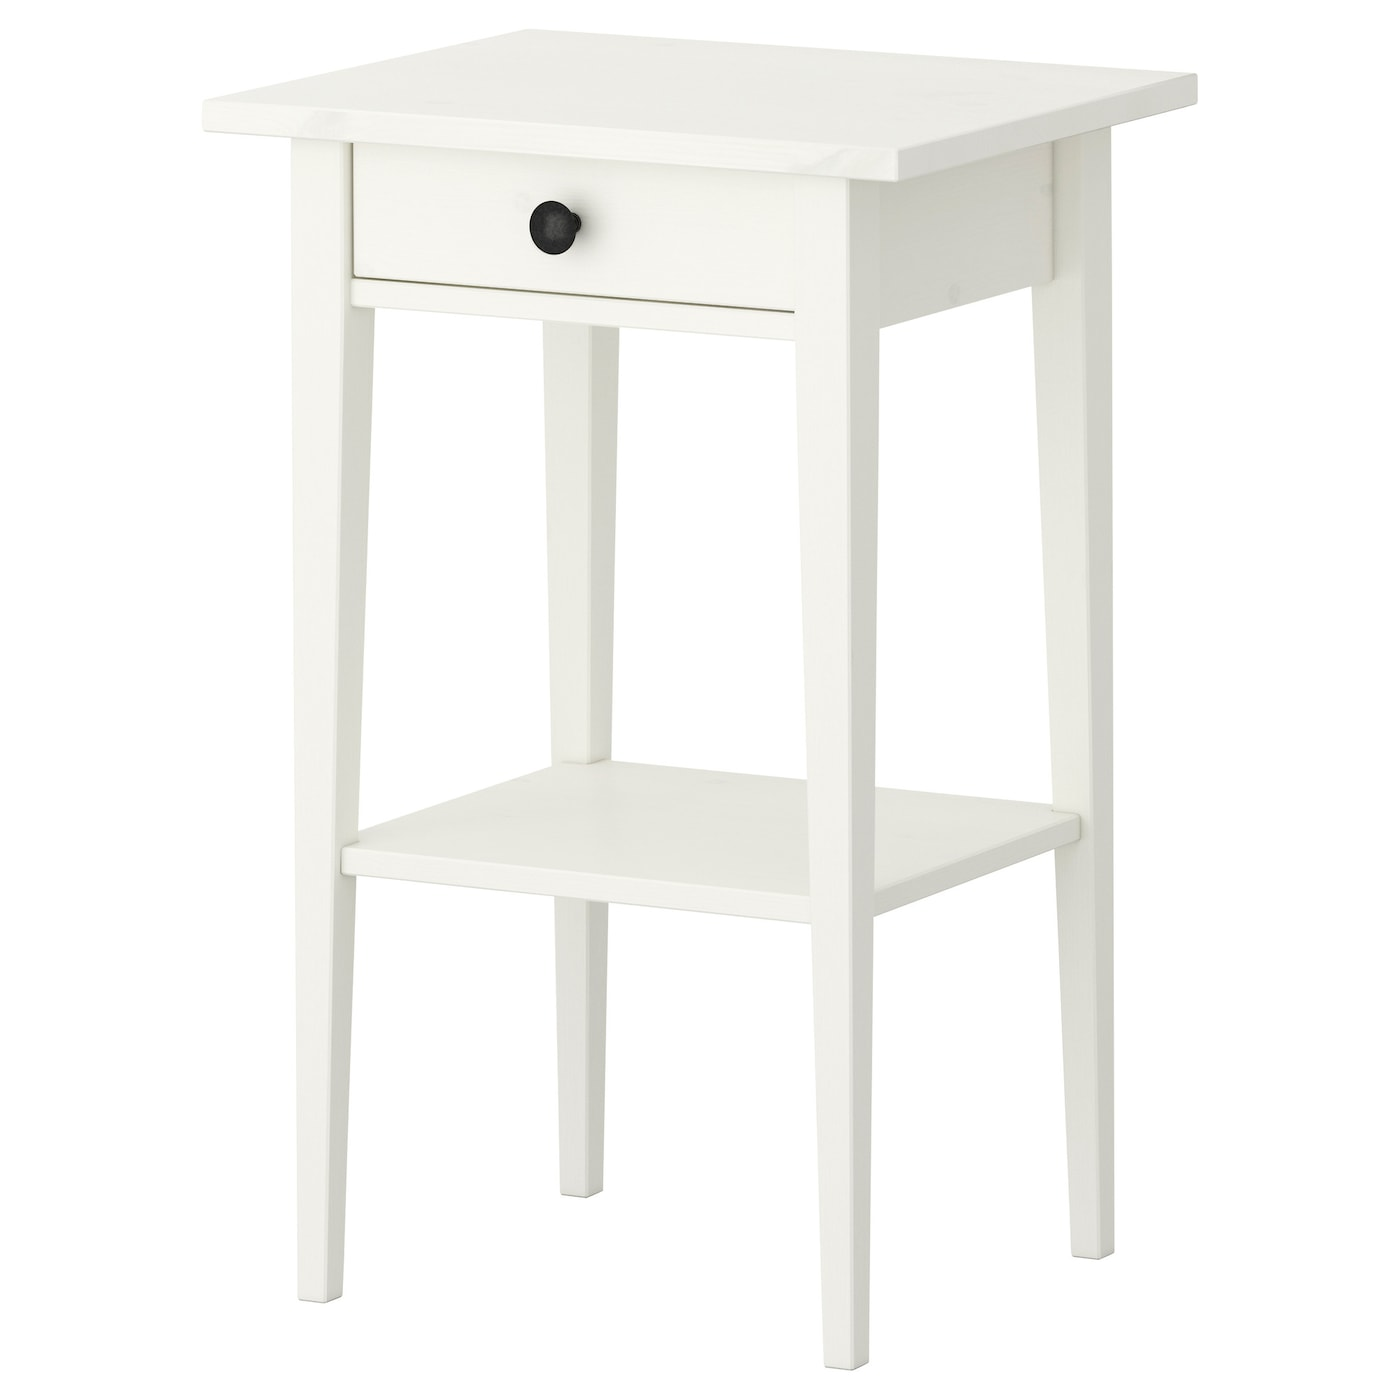 Hemnes table de chevet teint blanc 46x35 cm ikea - Table de chevet a suspendre ...